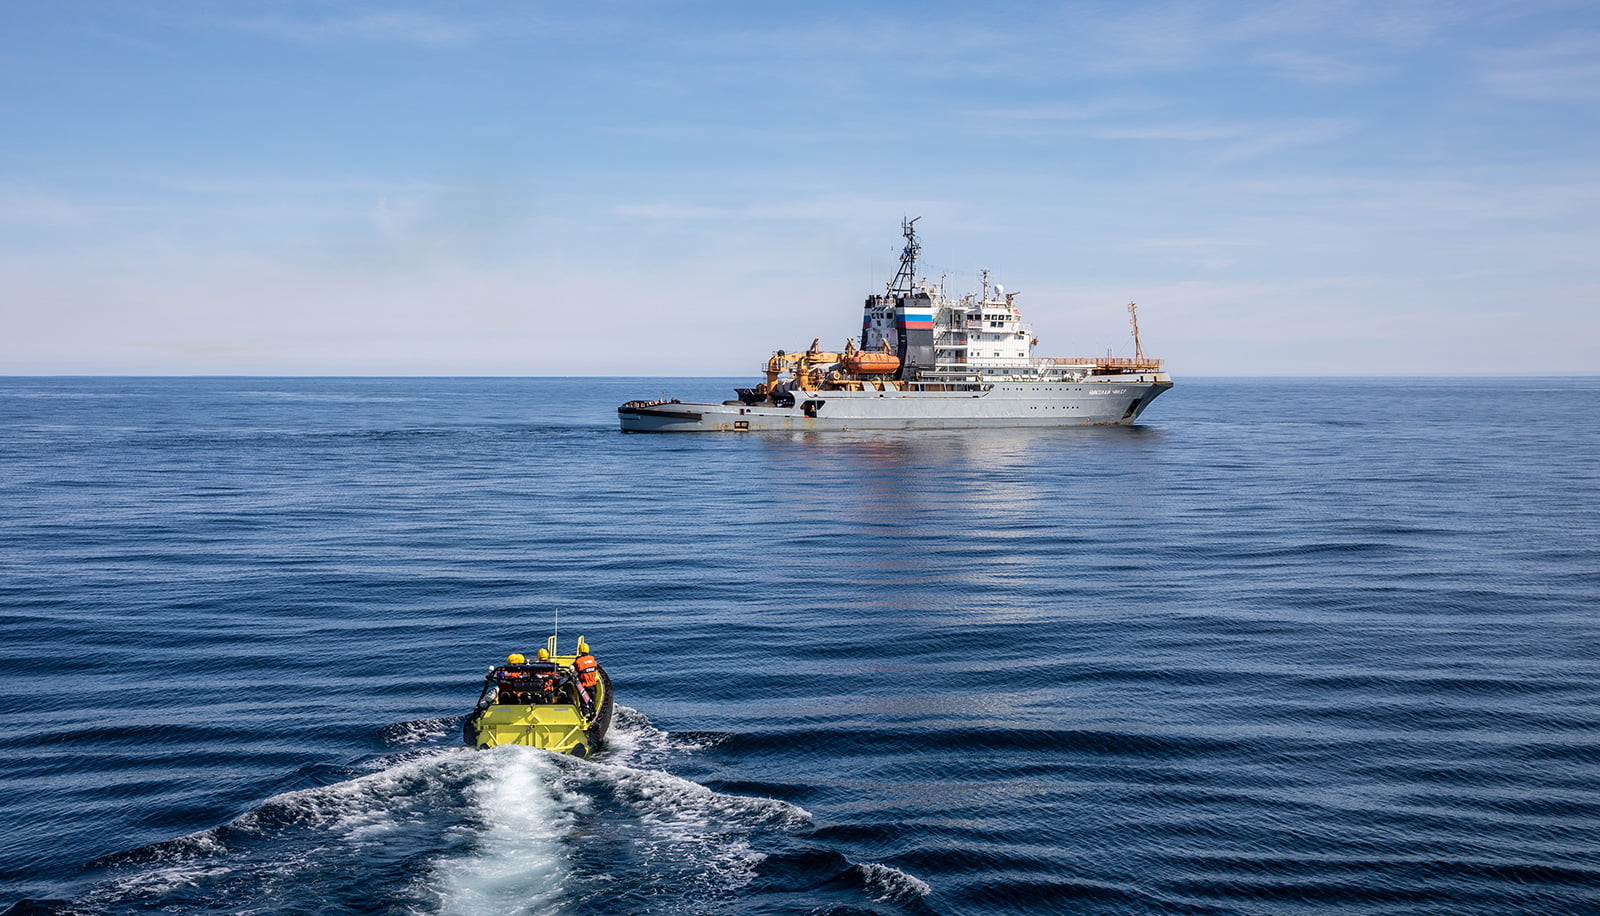 Norway coast guard exercise in the Barents Sea